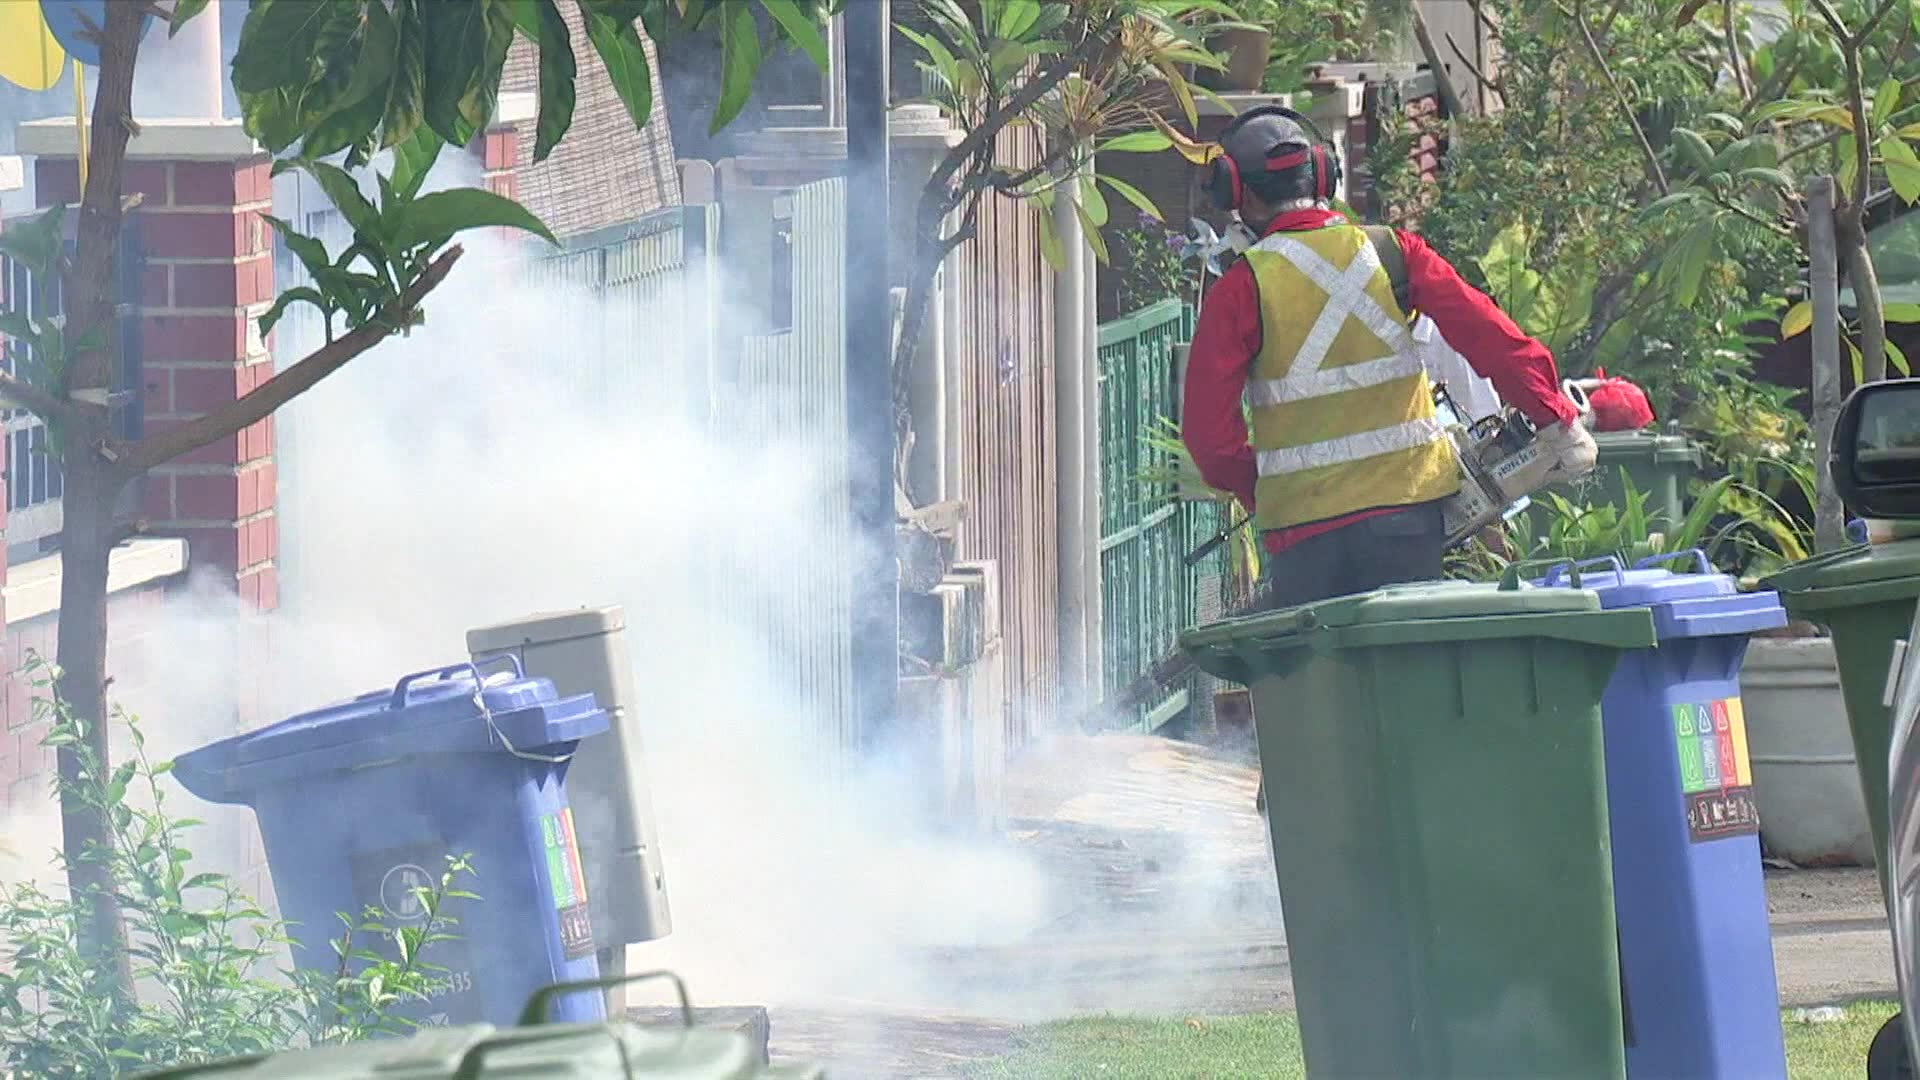 Weekly reported dengue cases in Singapore spike to highest in more than 3 years | Video